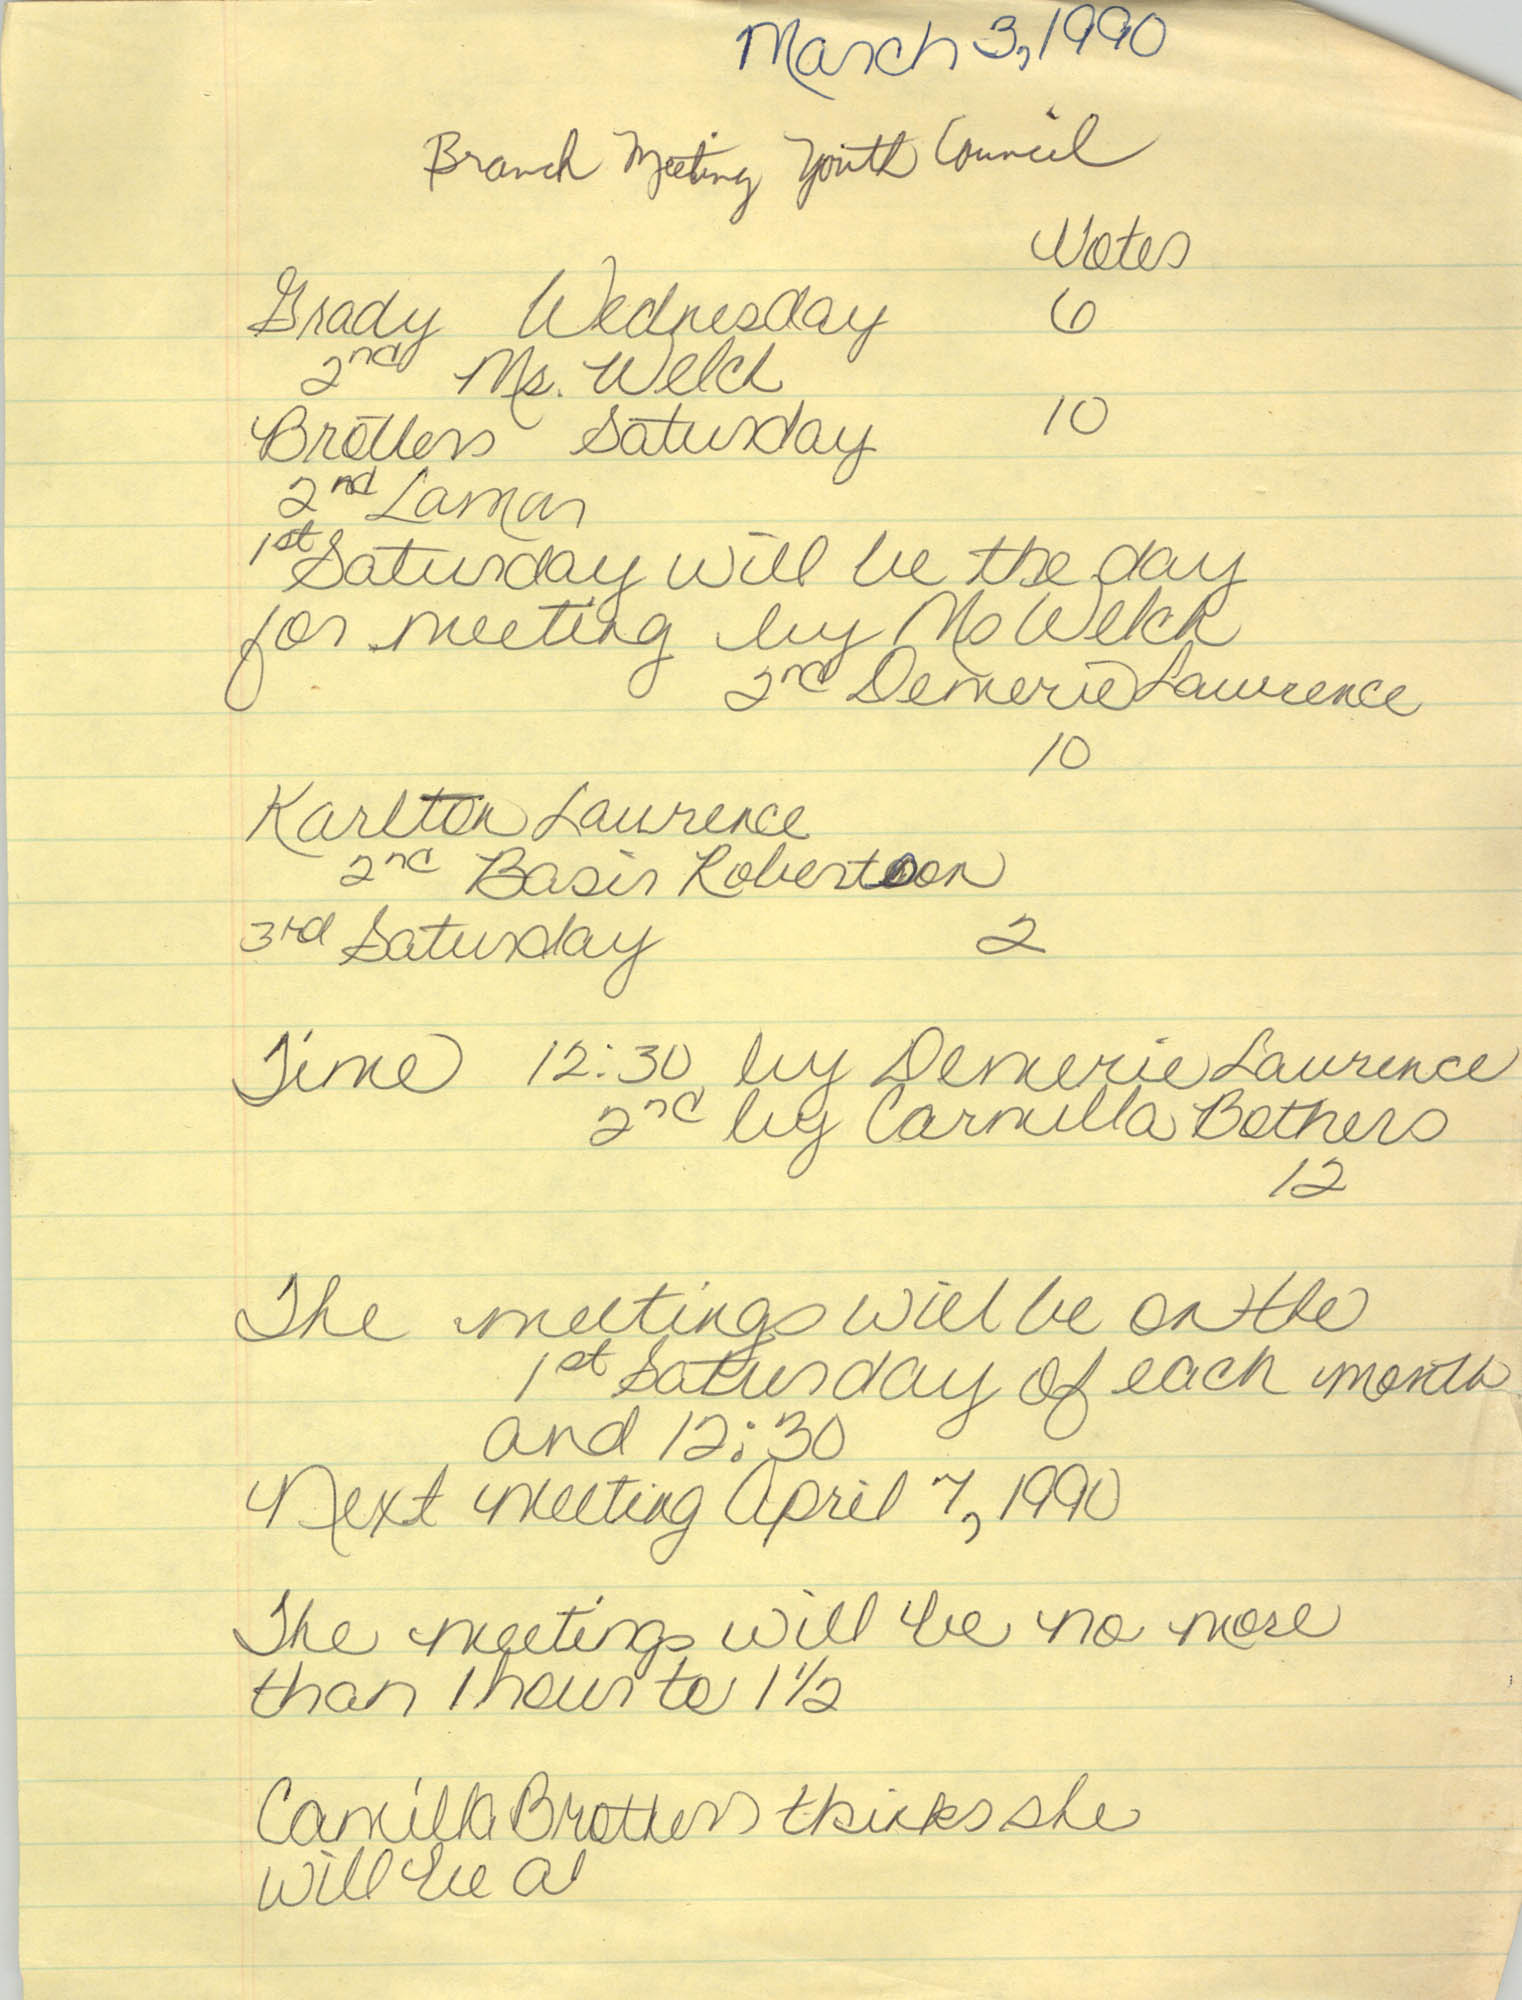 Handwritten Notes, Youth Council, Branch Meeting, March 3, 1990